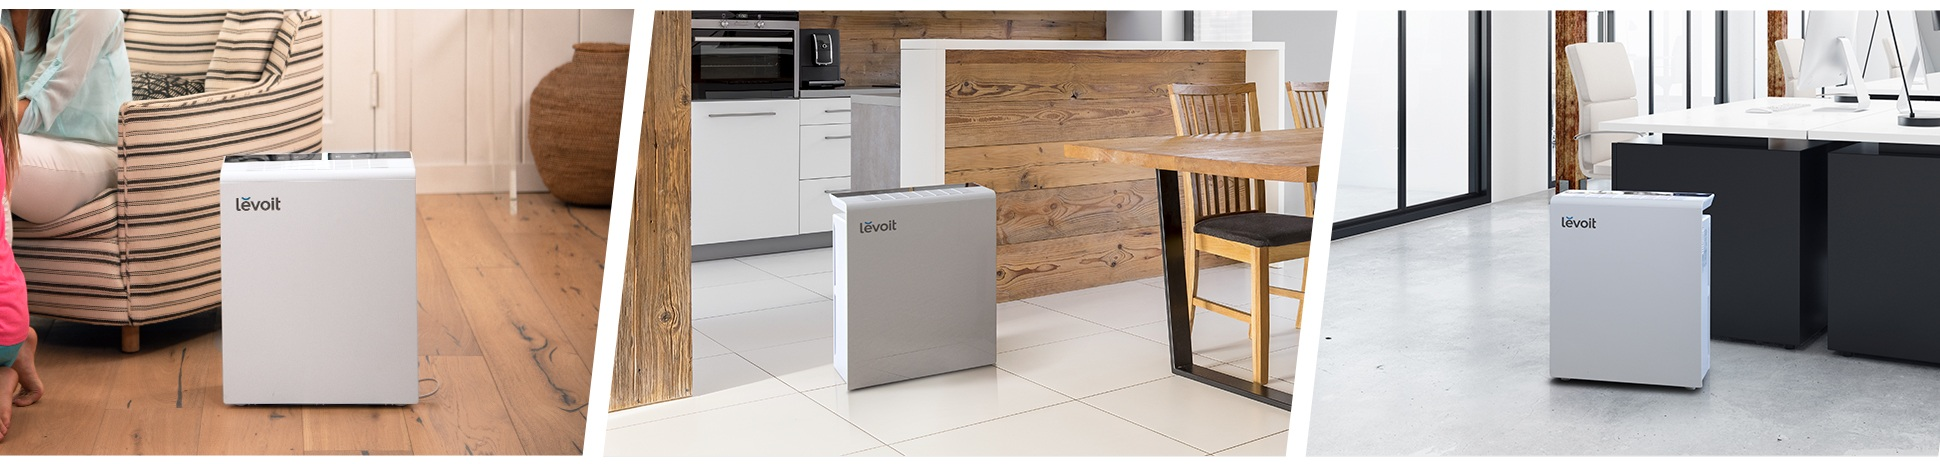 Get+Fresh+Air+Everyday+With+Levoit+Smart+Wifi+Air+Purifier4.jpg